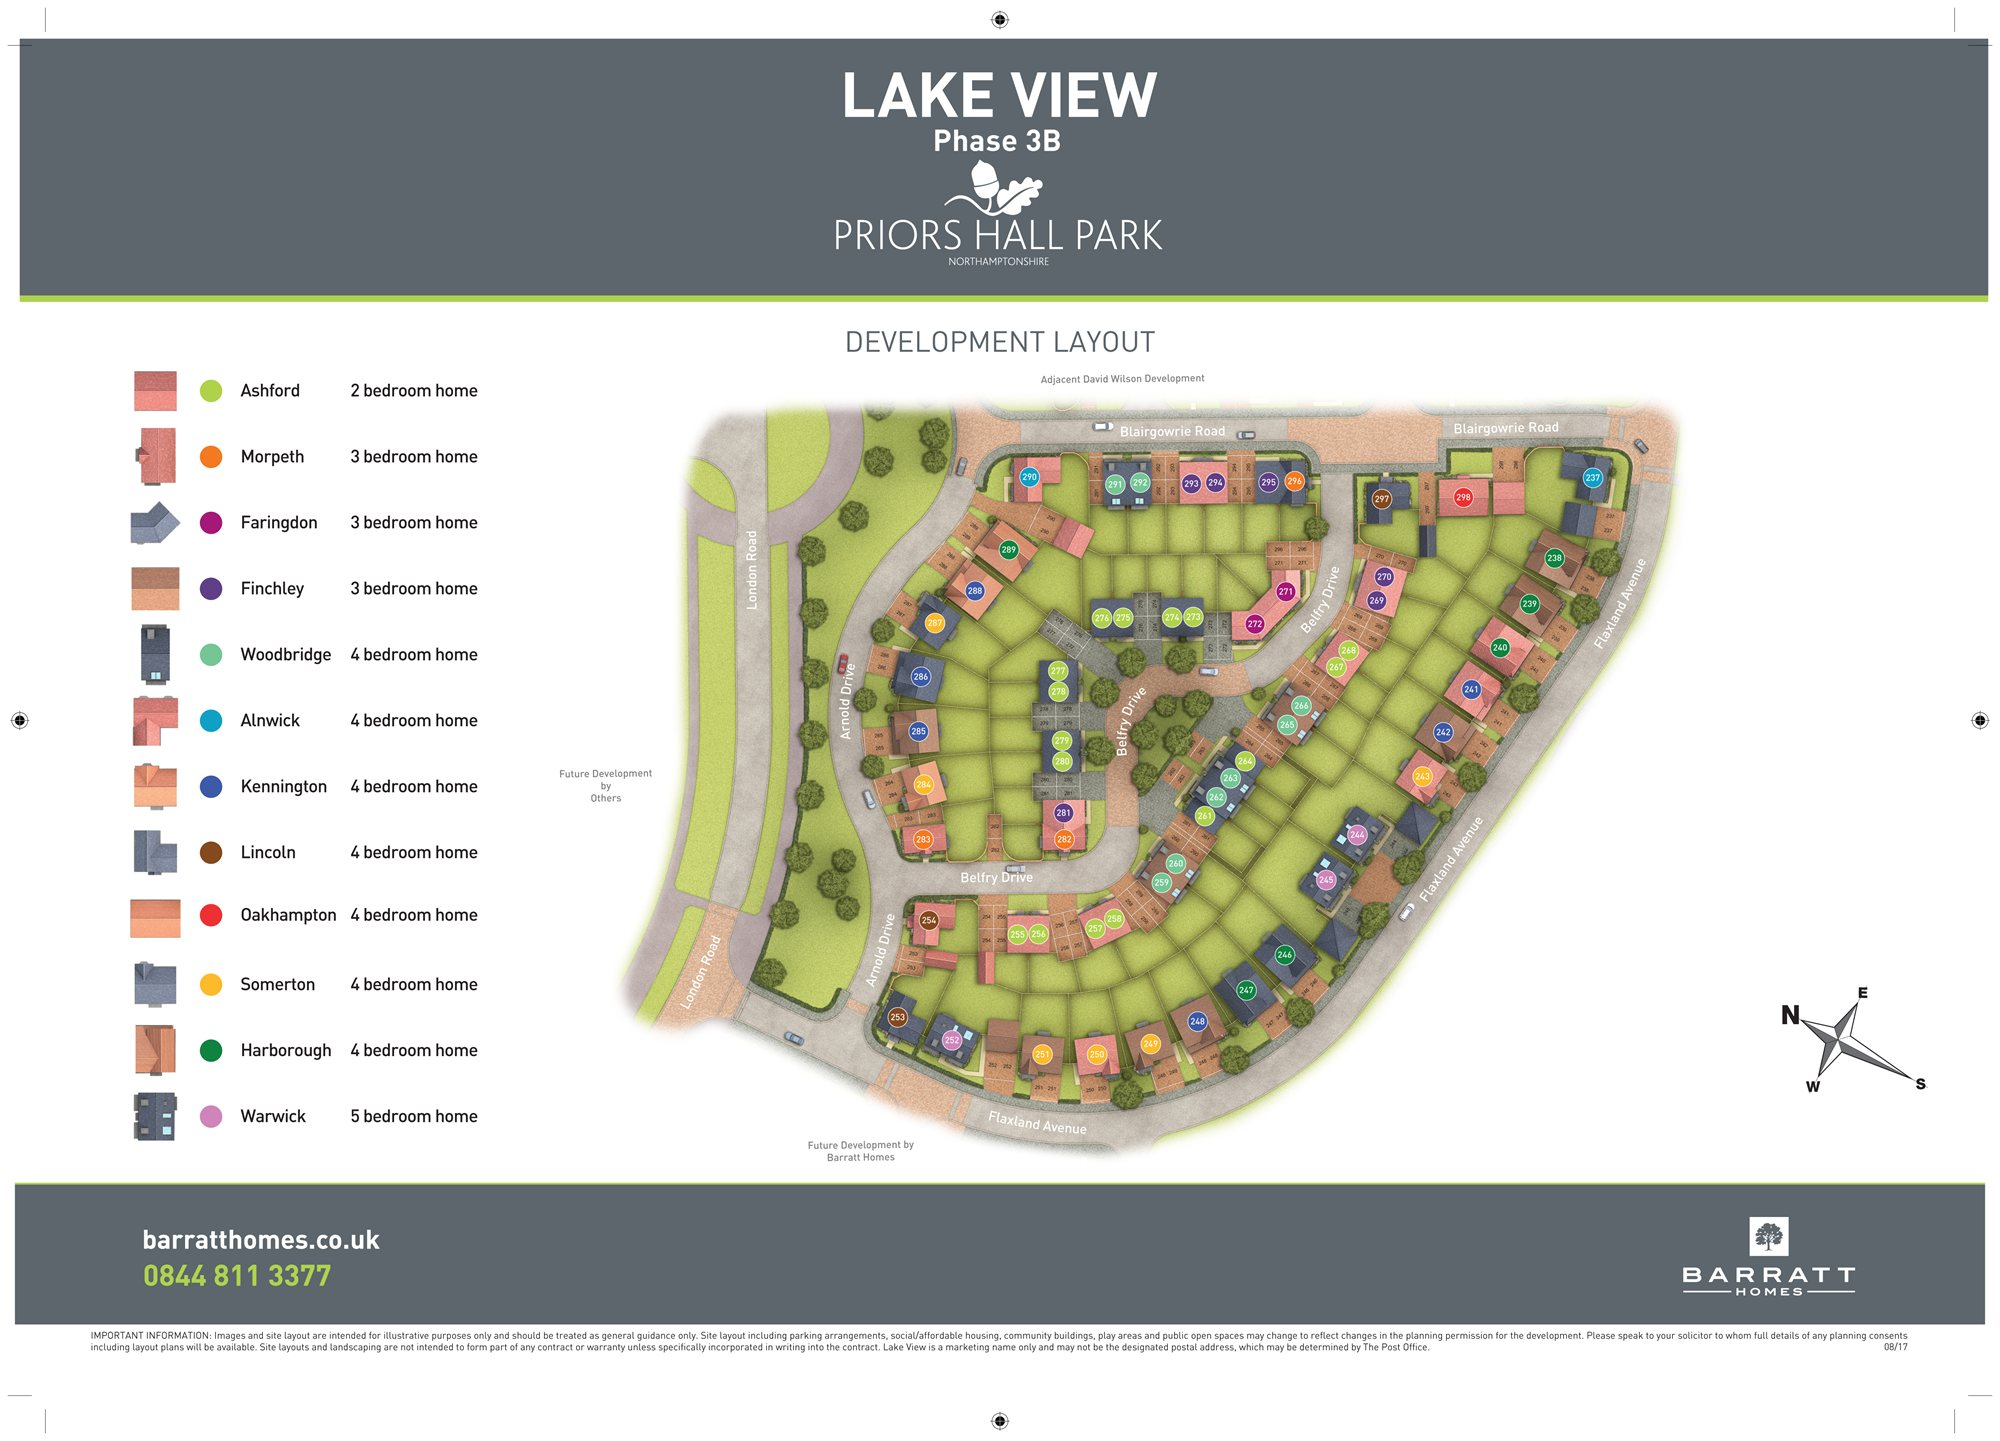 Lake View Phase 3 Development Plan